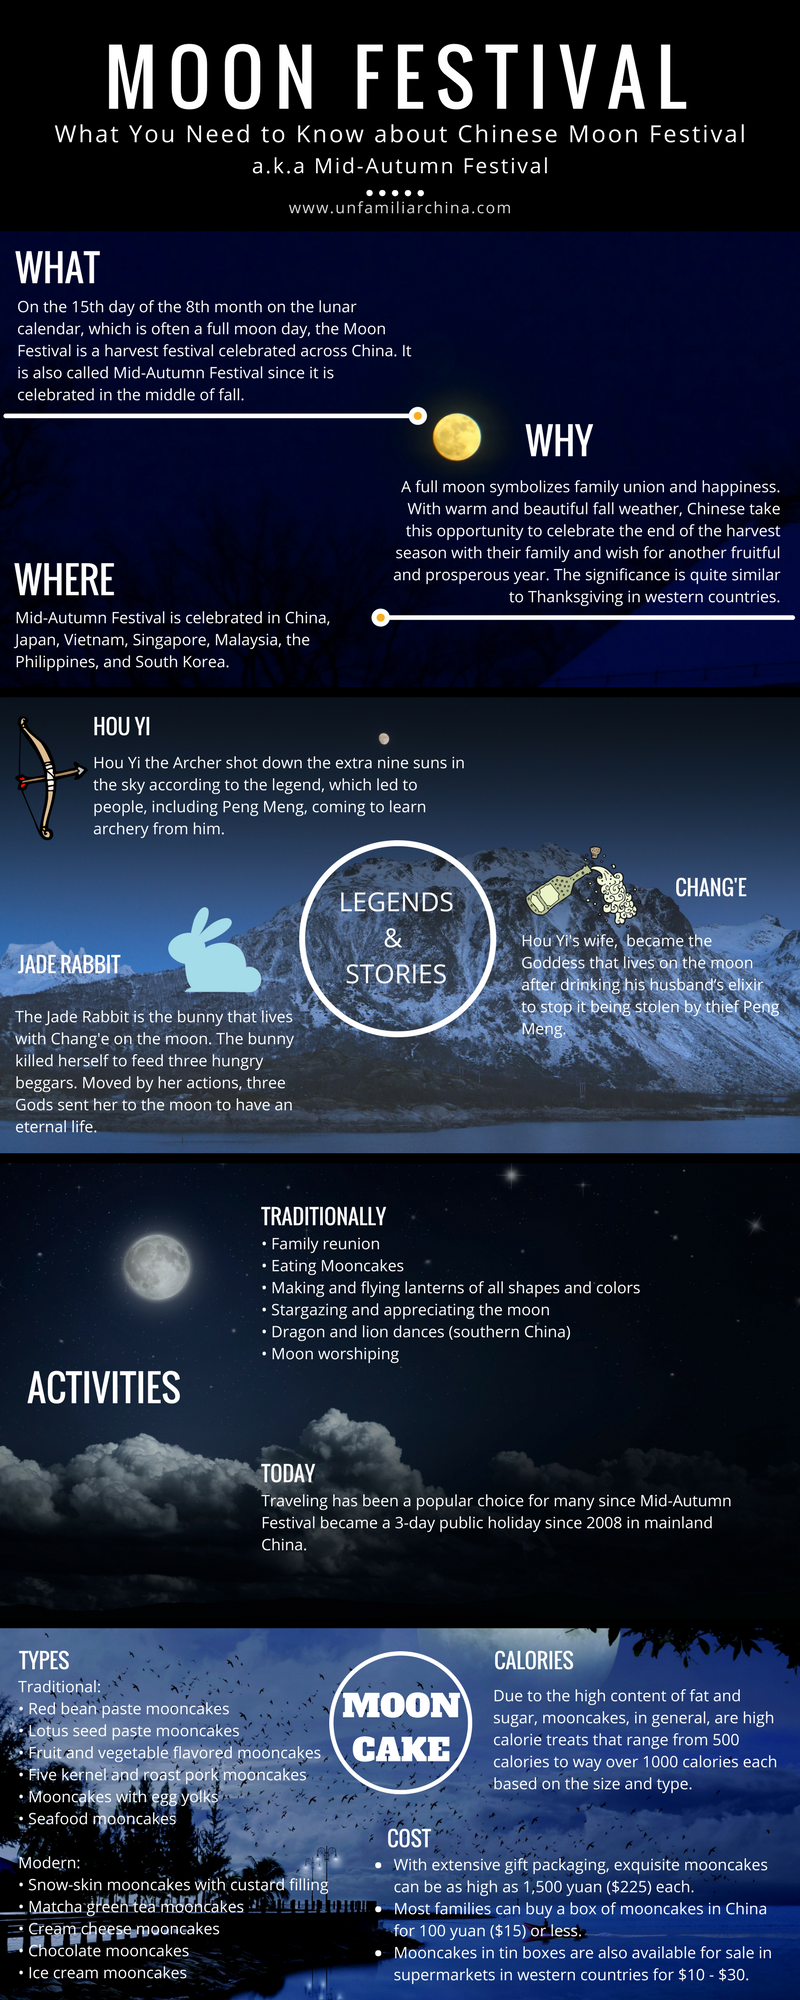 Infographic] What You Need to Know about Chinese Moon